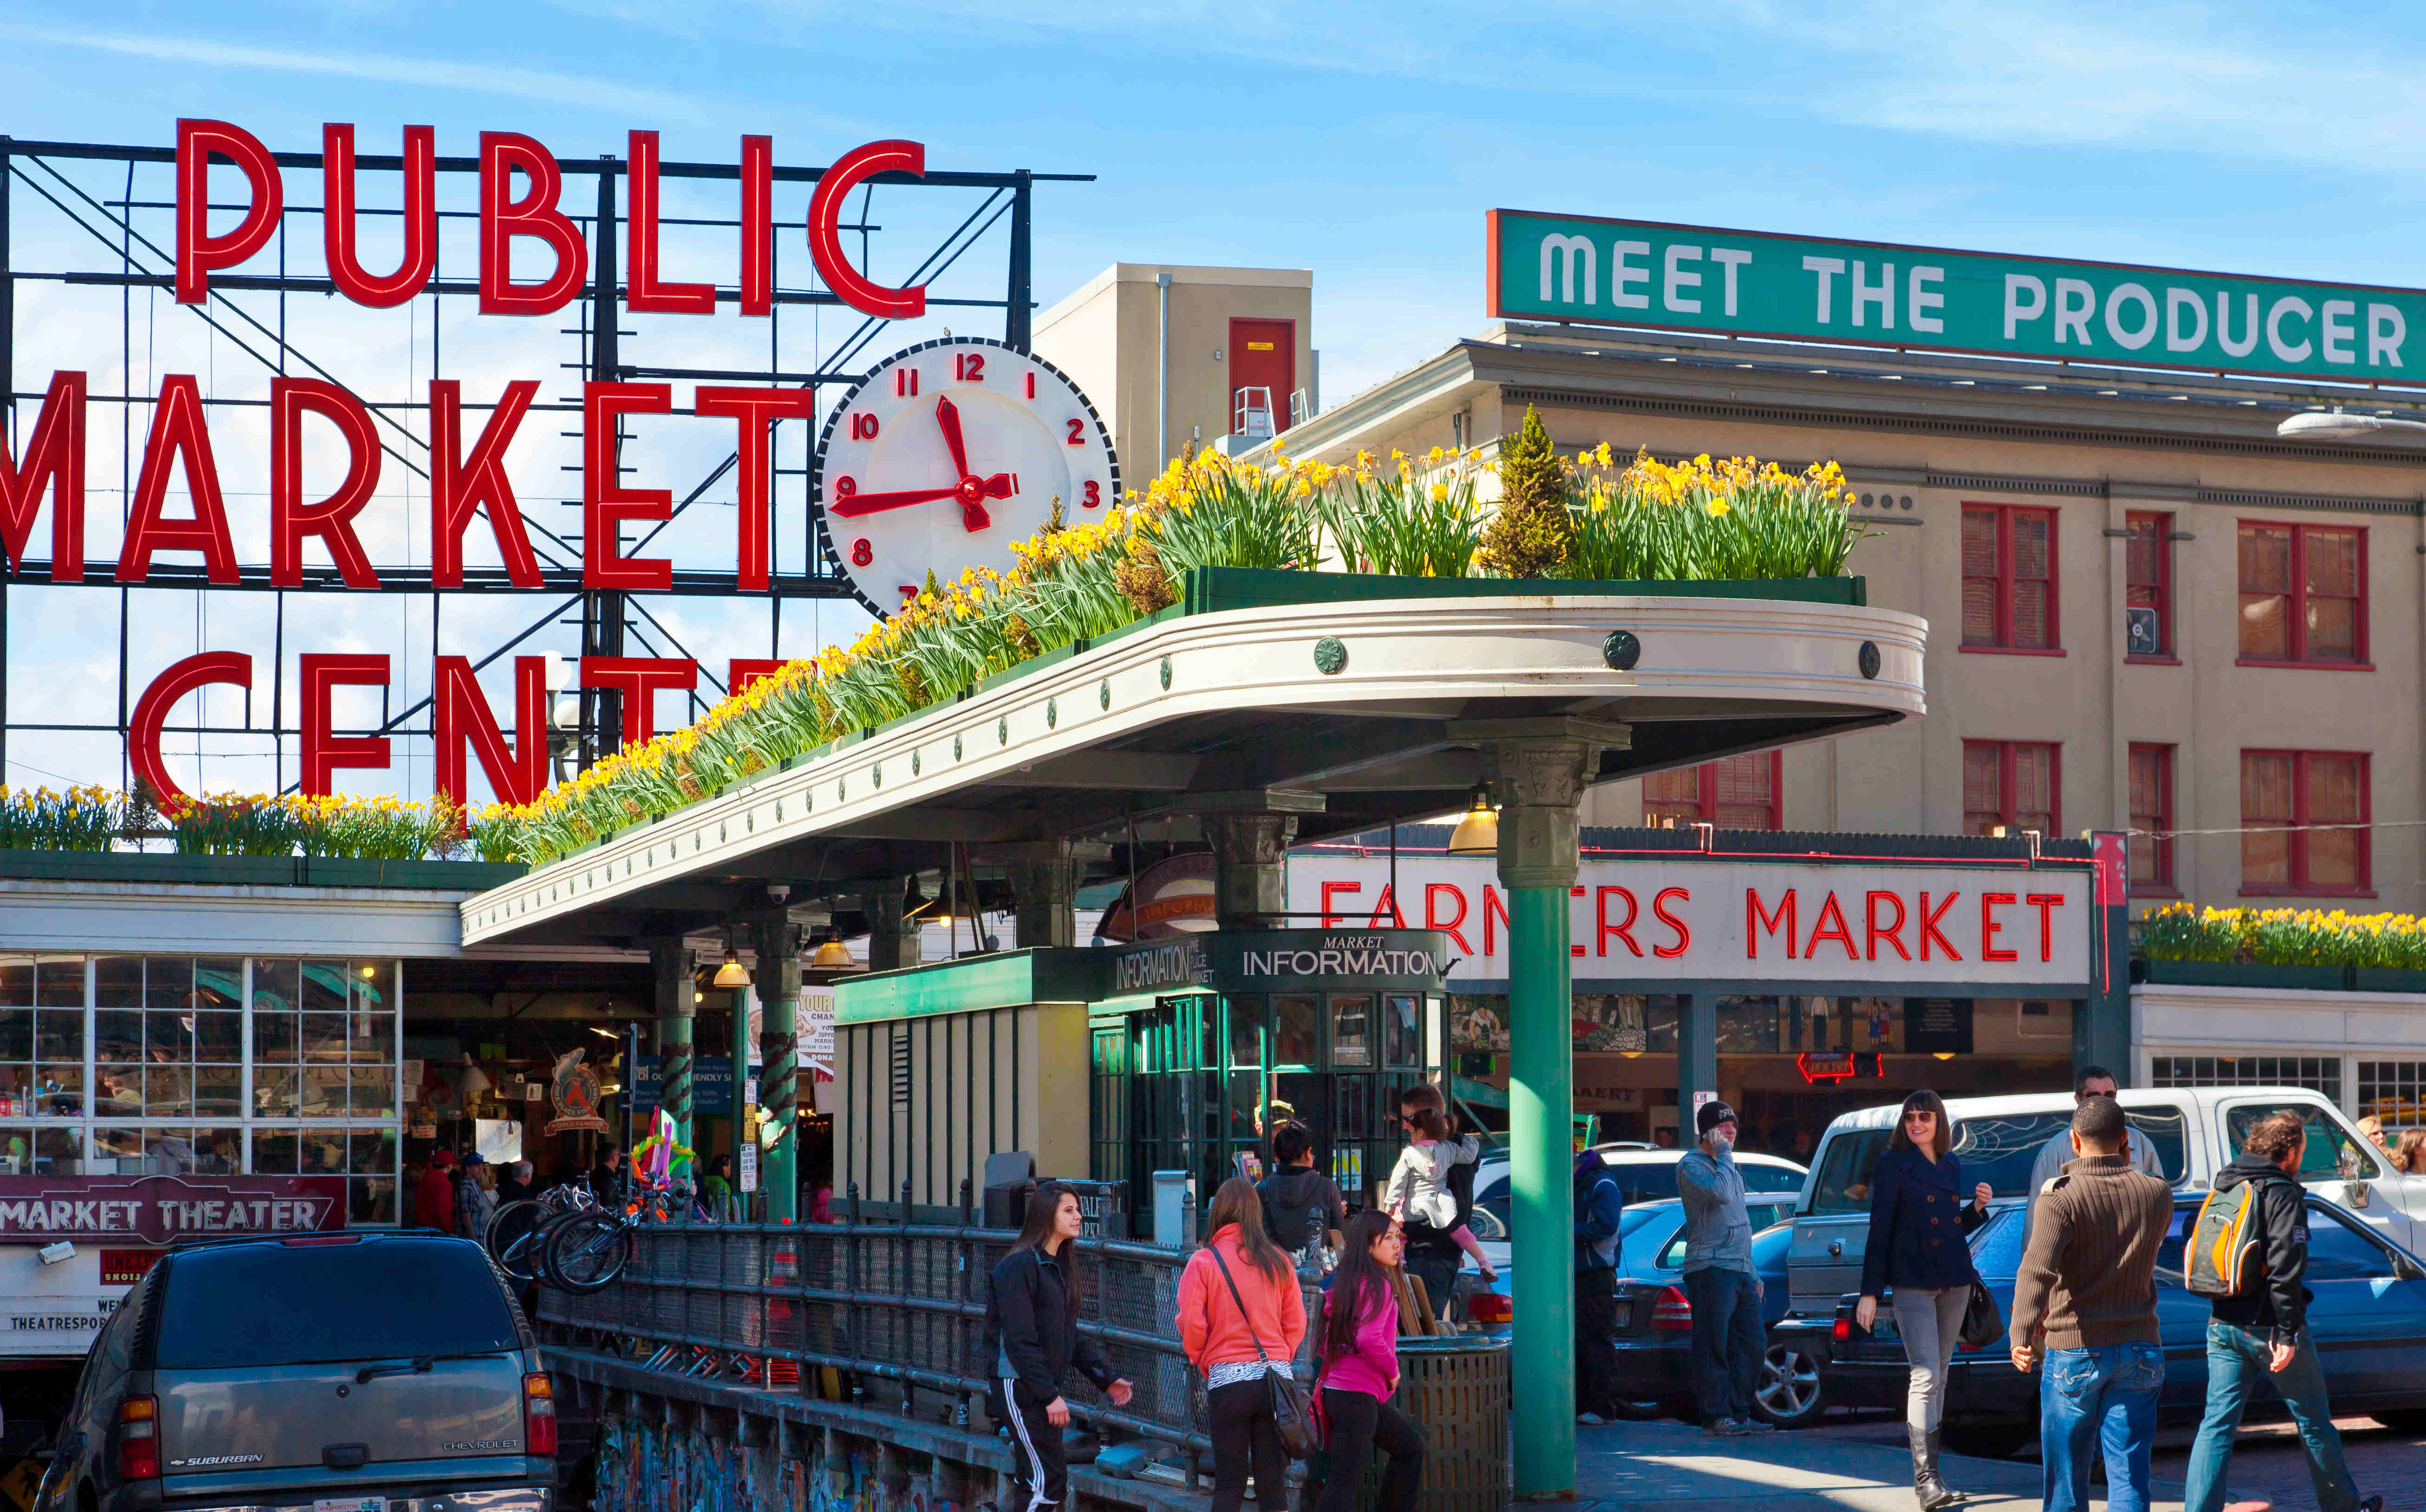 pike market place seattle expansion open major iconic reopens odrin